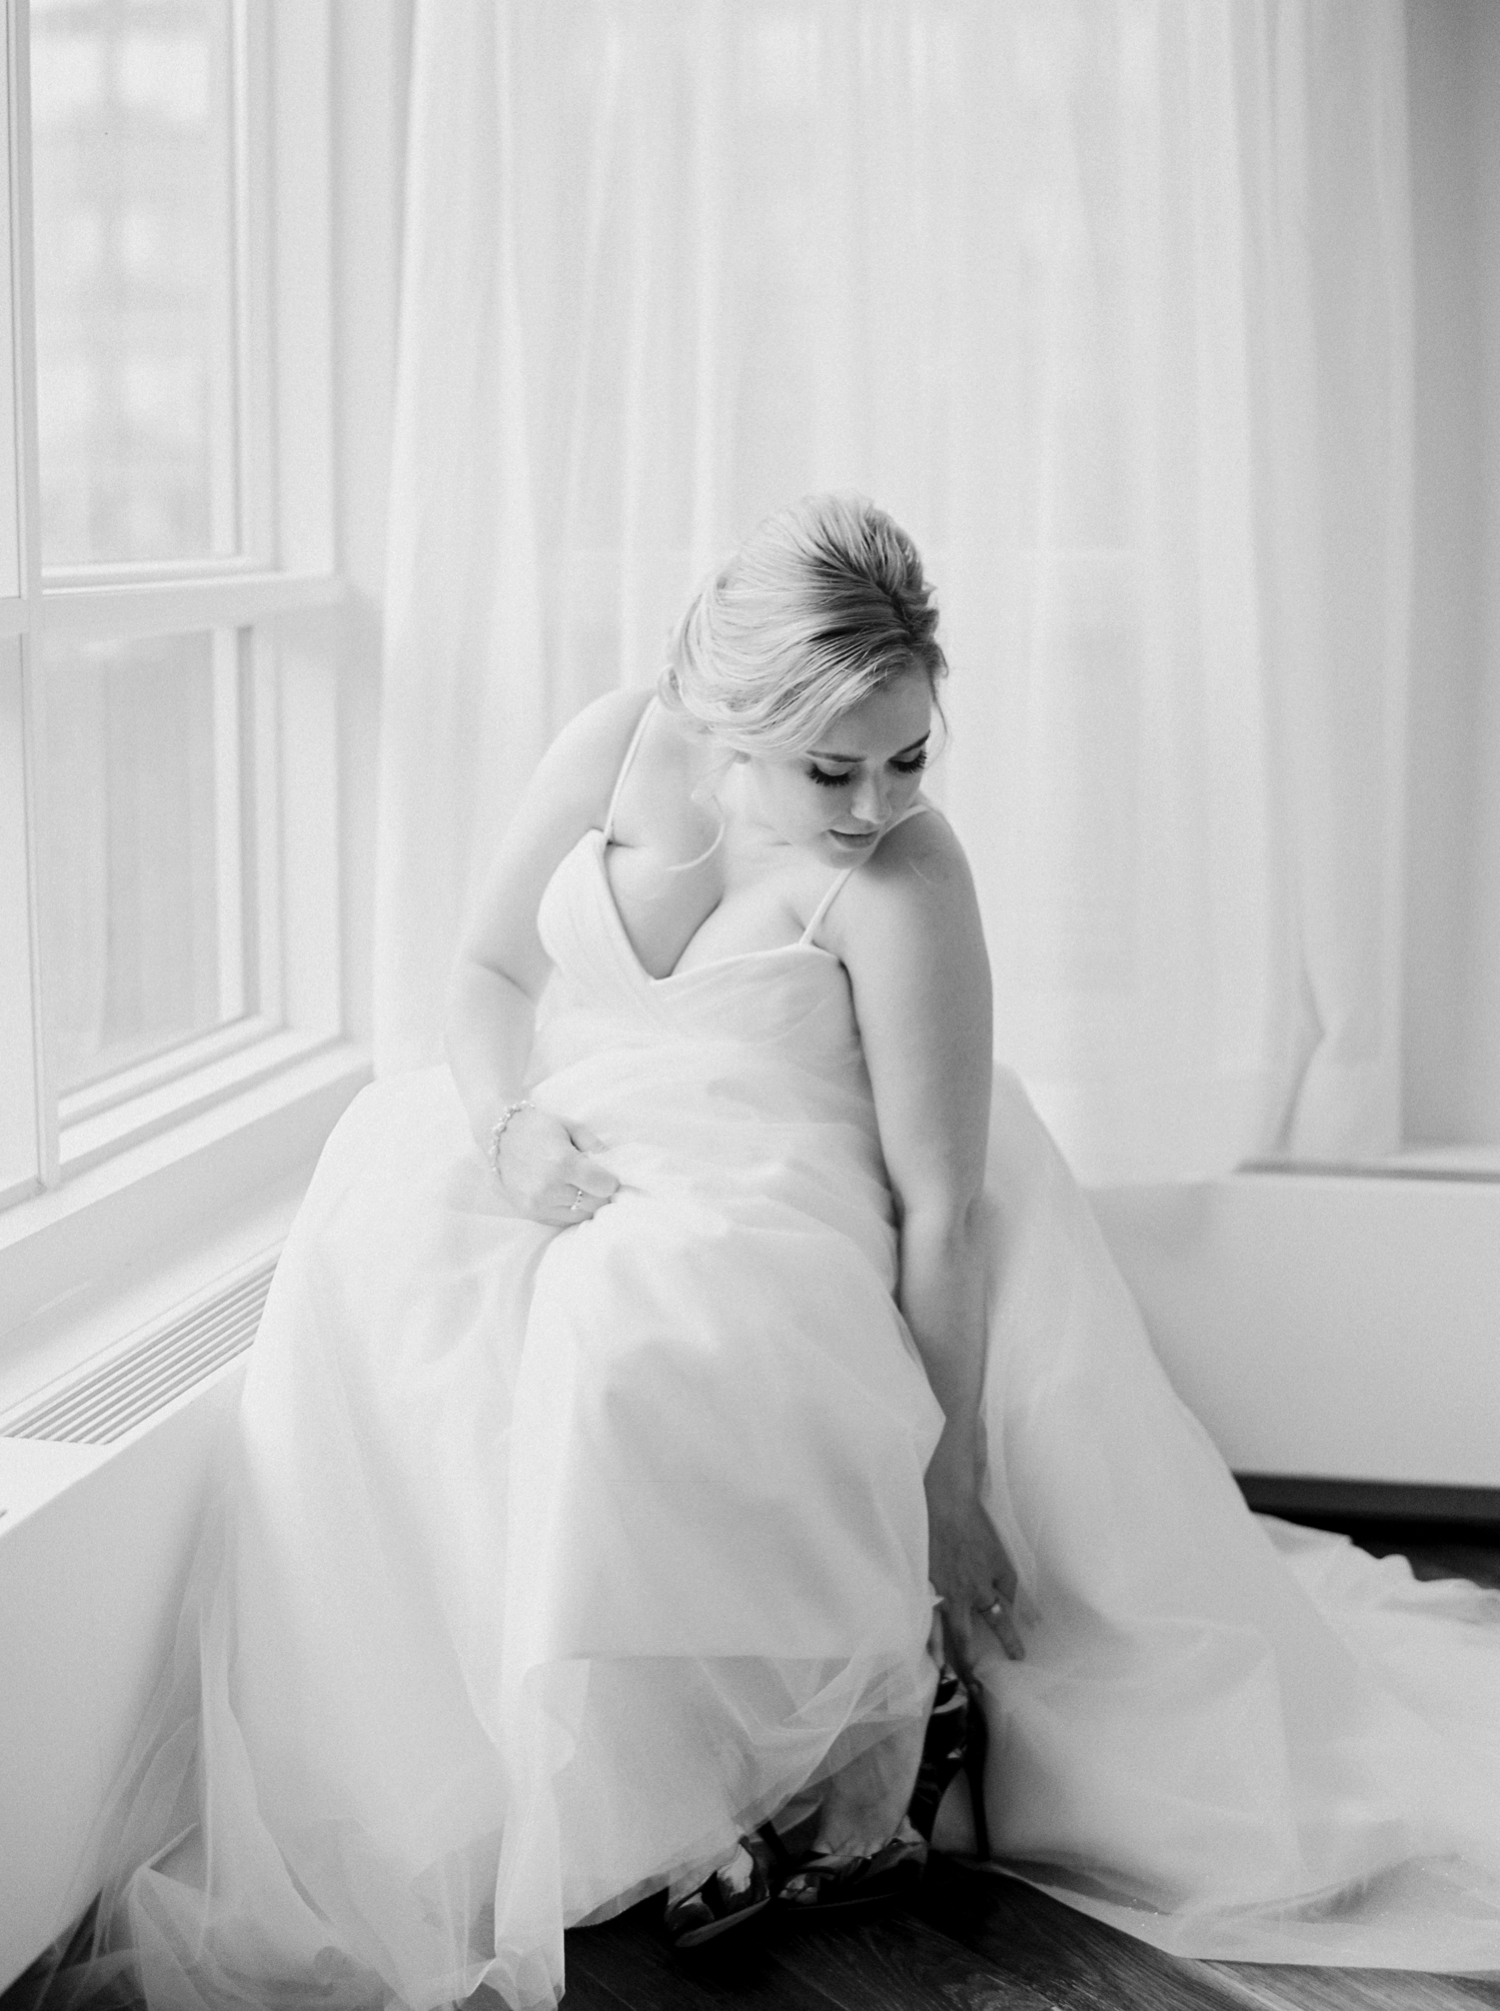 Calgary wedding photographers | banff wedding photographers | fine art film | Justine Milton Photography | wedding vows | elopement photographers | wedding dress